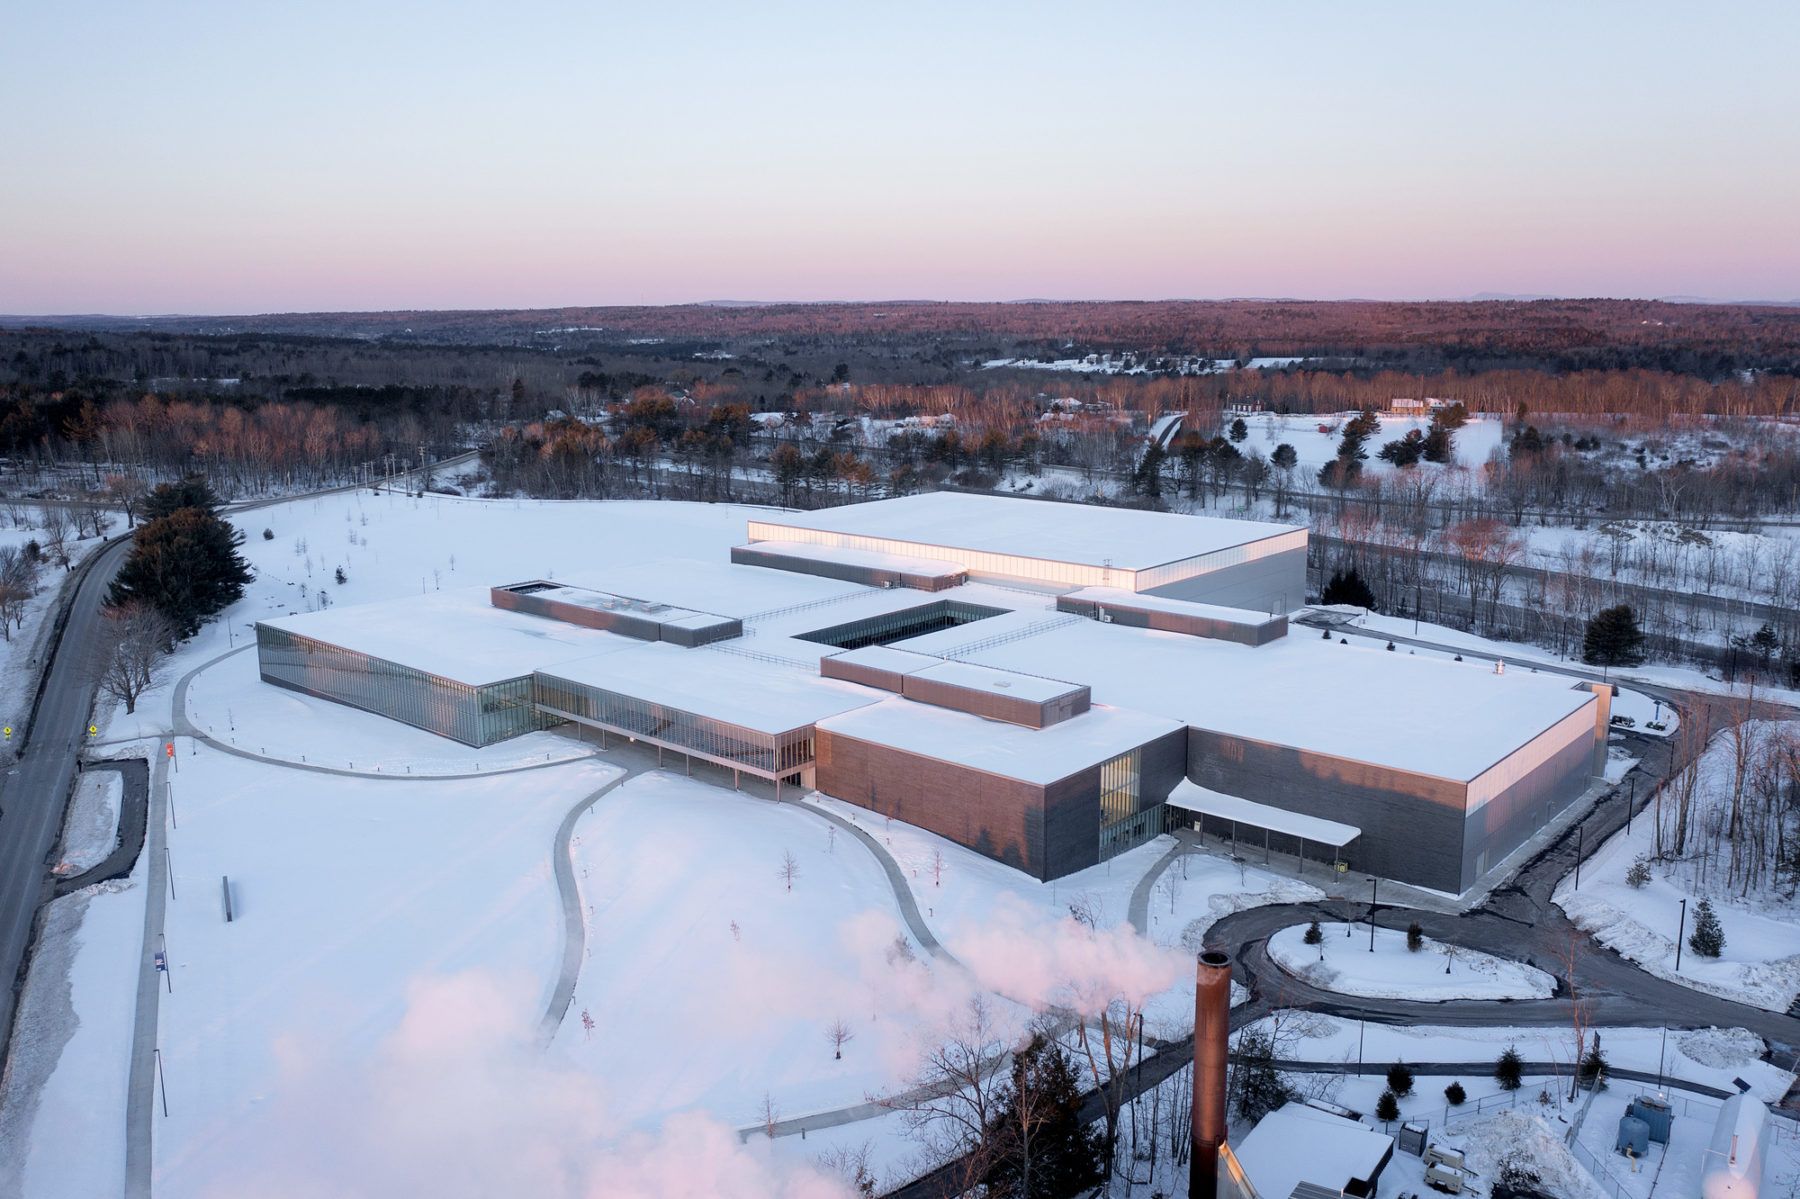 exterior aerial photo of building at dusk - landscape is snow covered